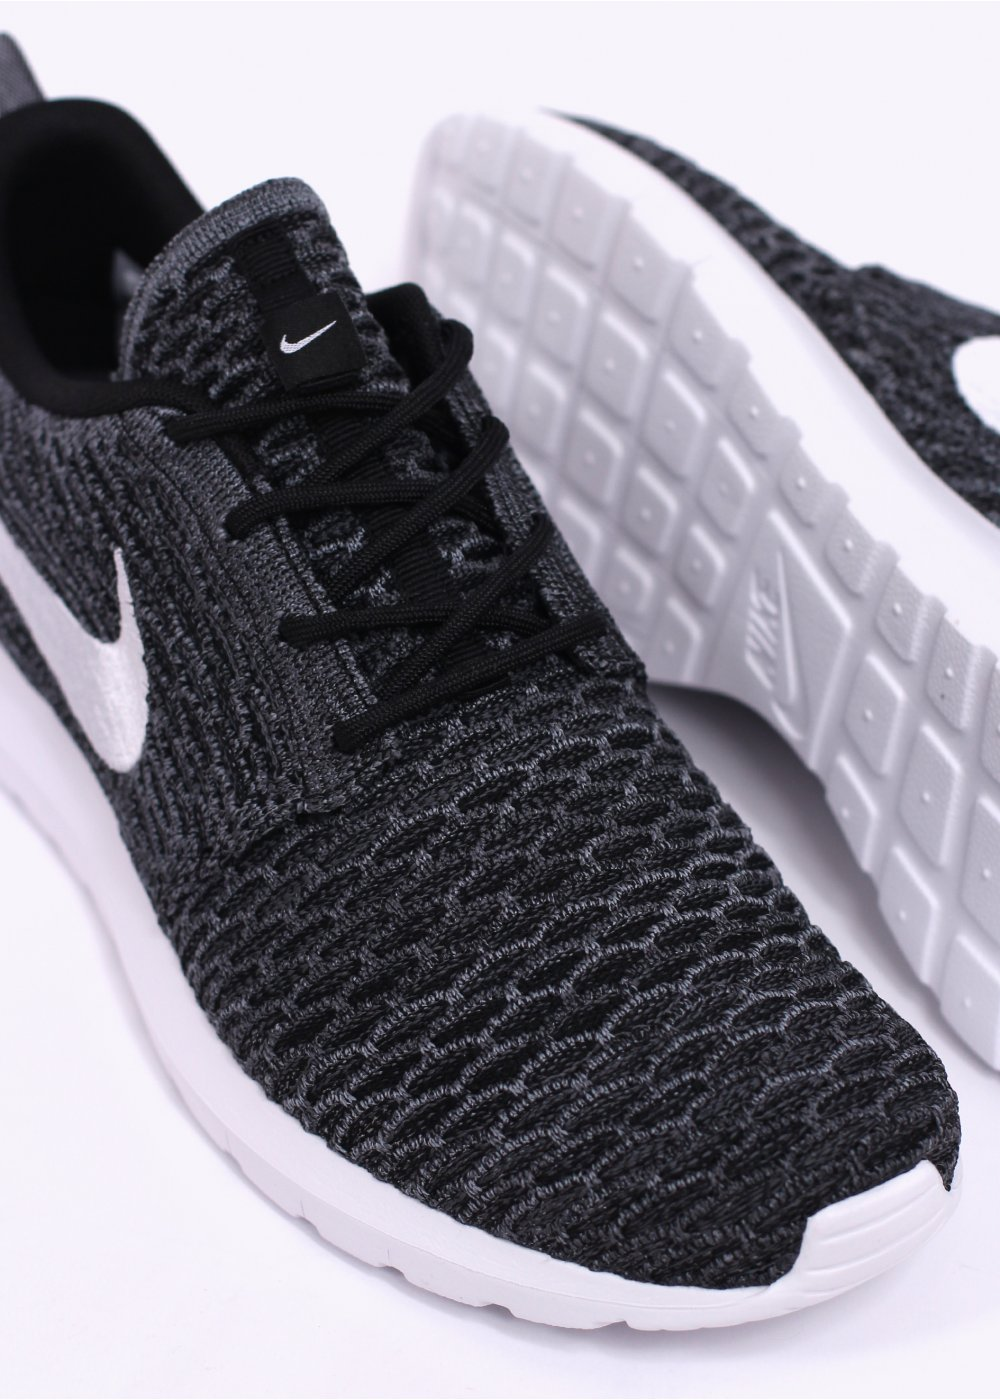 huge discount 480c5 593d8 Flyknit Roshe Run Trainers - Black   White   Dark Grey   Cool Grey